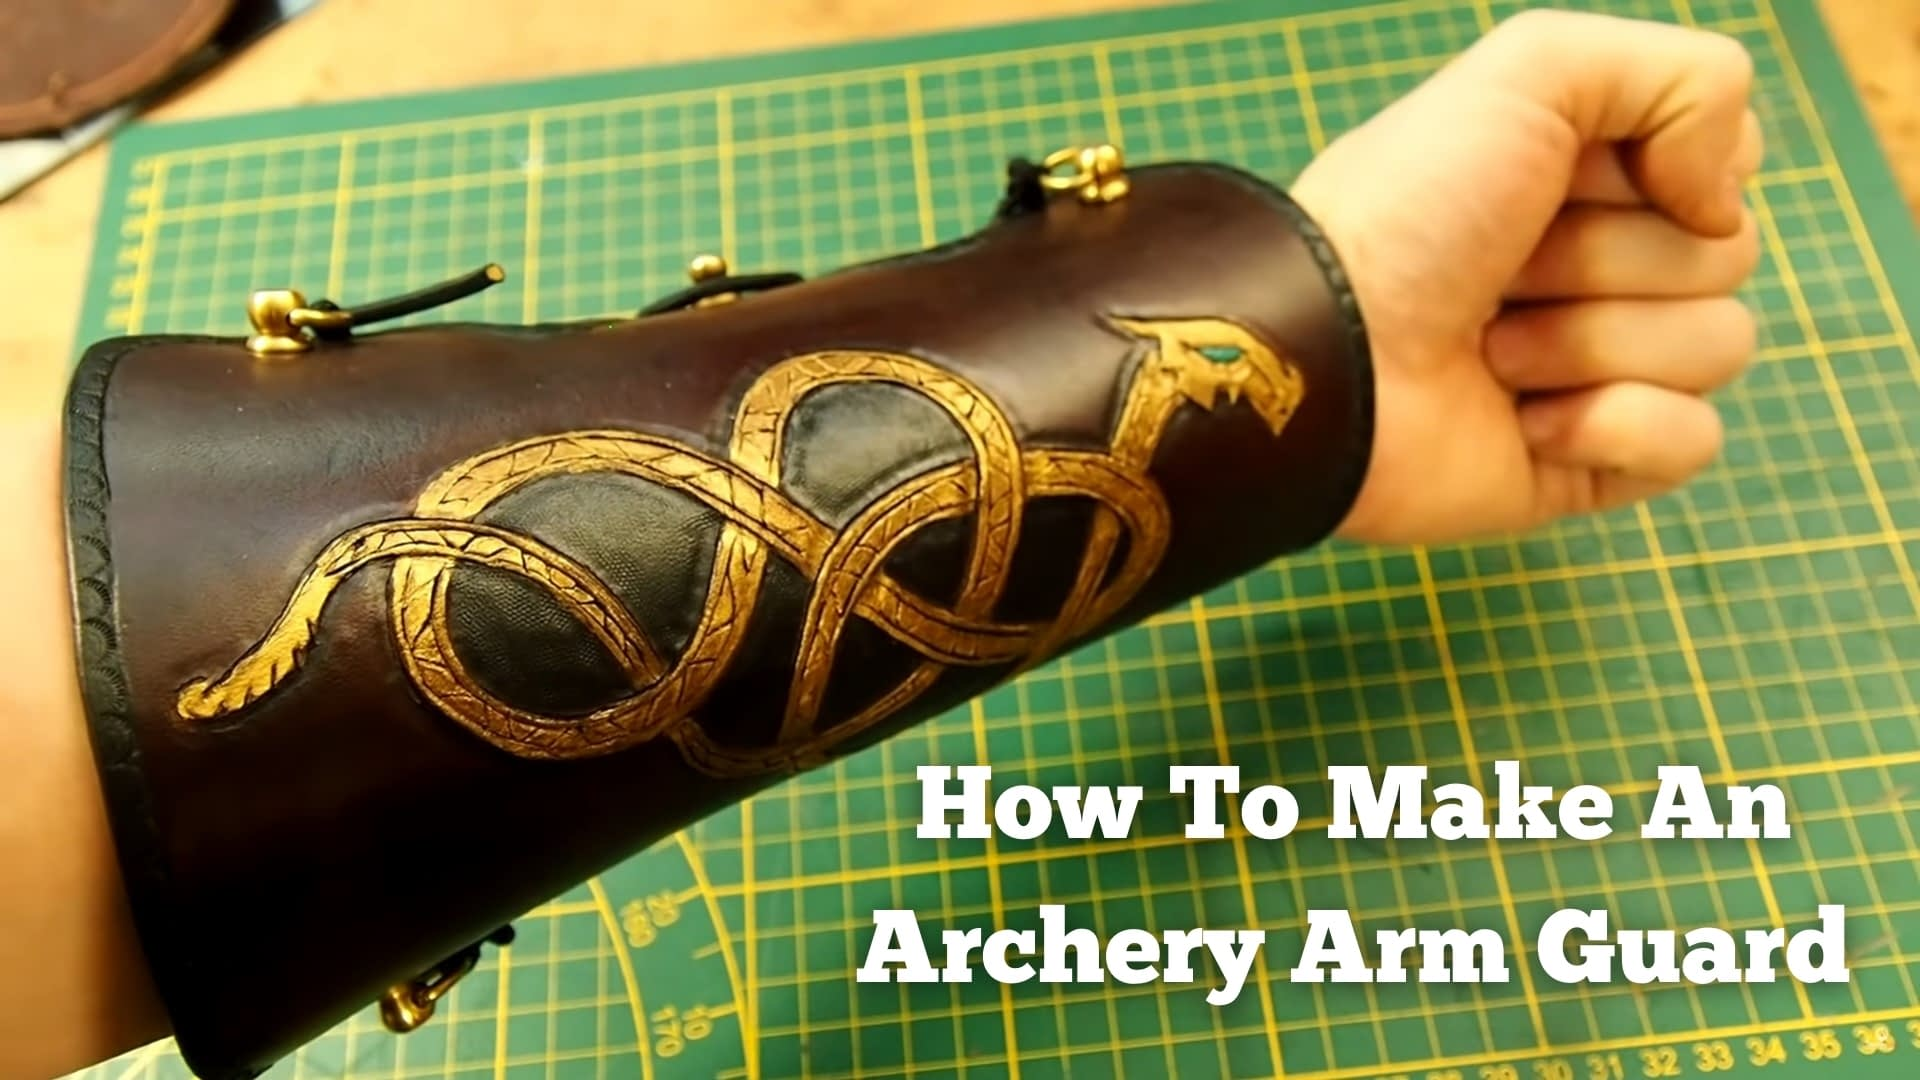 How To Make An Archery Arm Guard